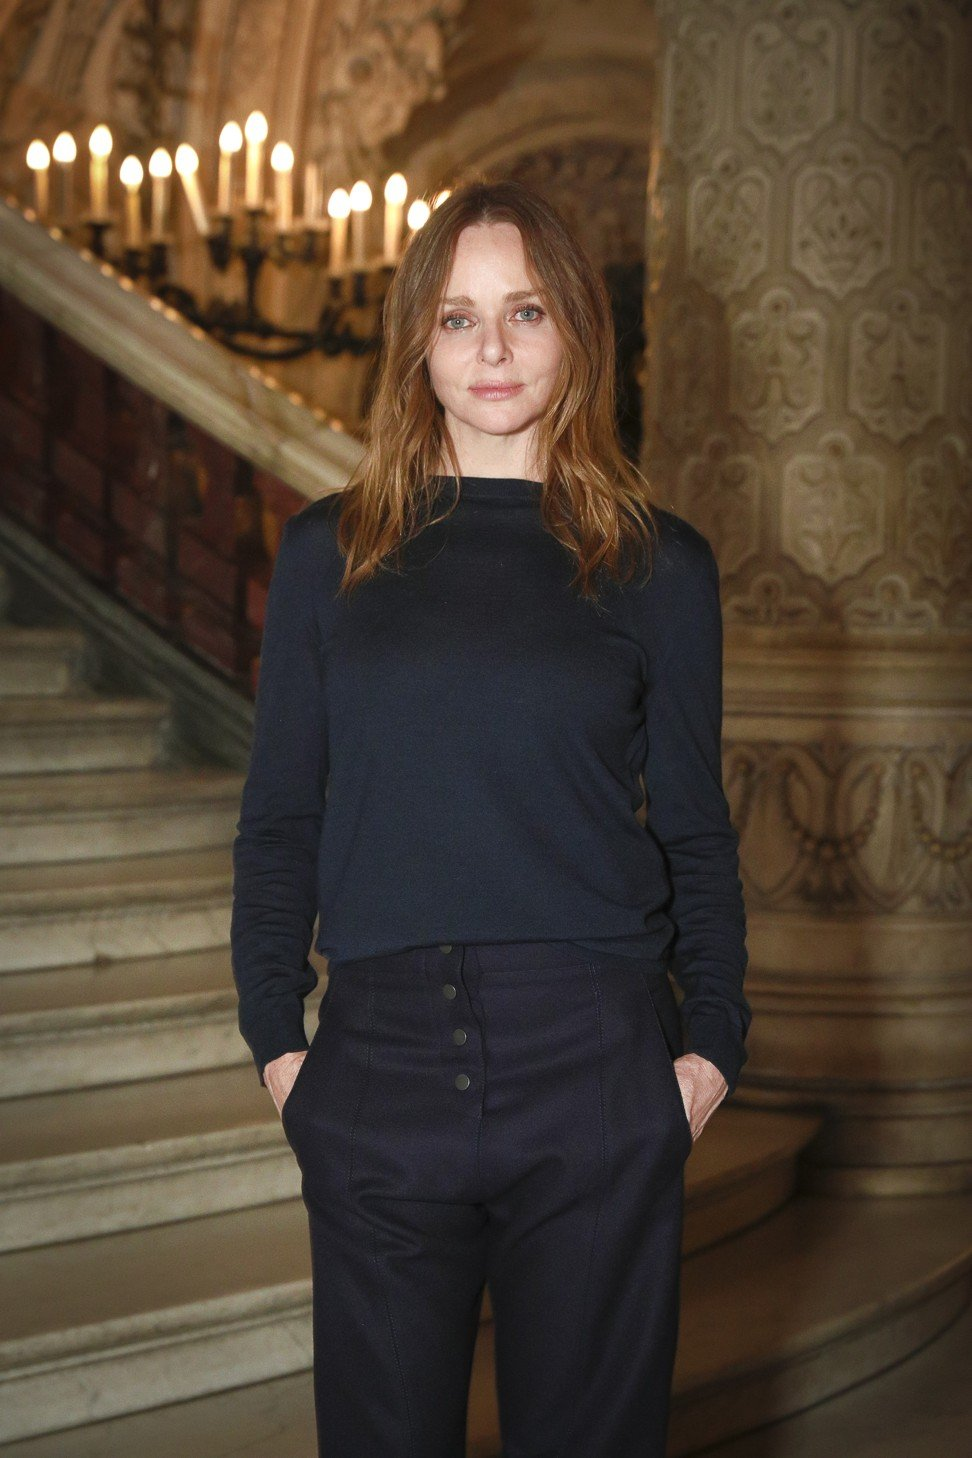 6663cc8173a Stella McCartney's eco-friendly fashion is fuelled by her innovative and  tenacious spirit | South China Morning Post